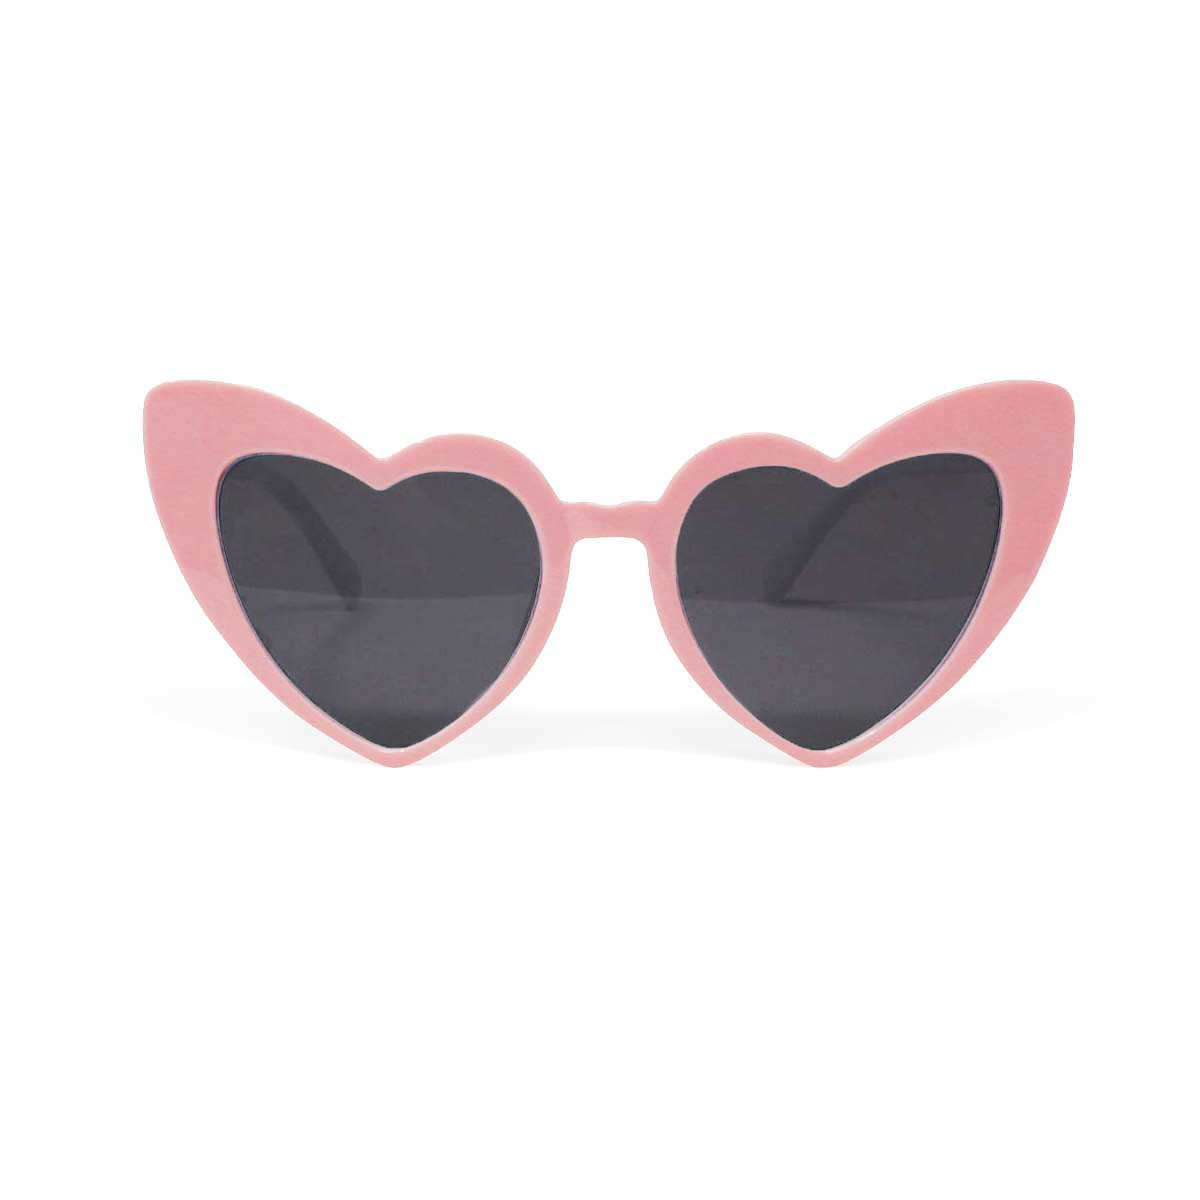 Retro Heart Shaped Sunglasses - Pink